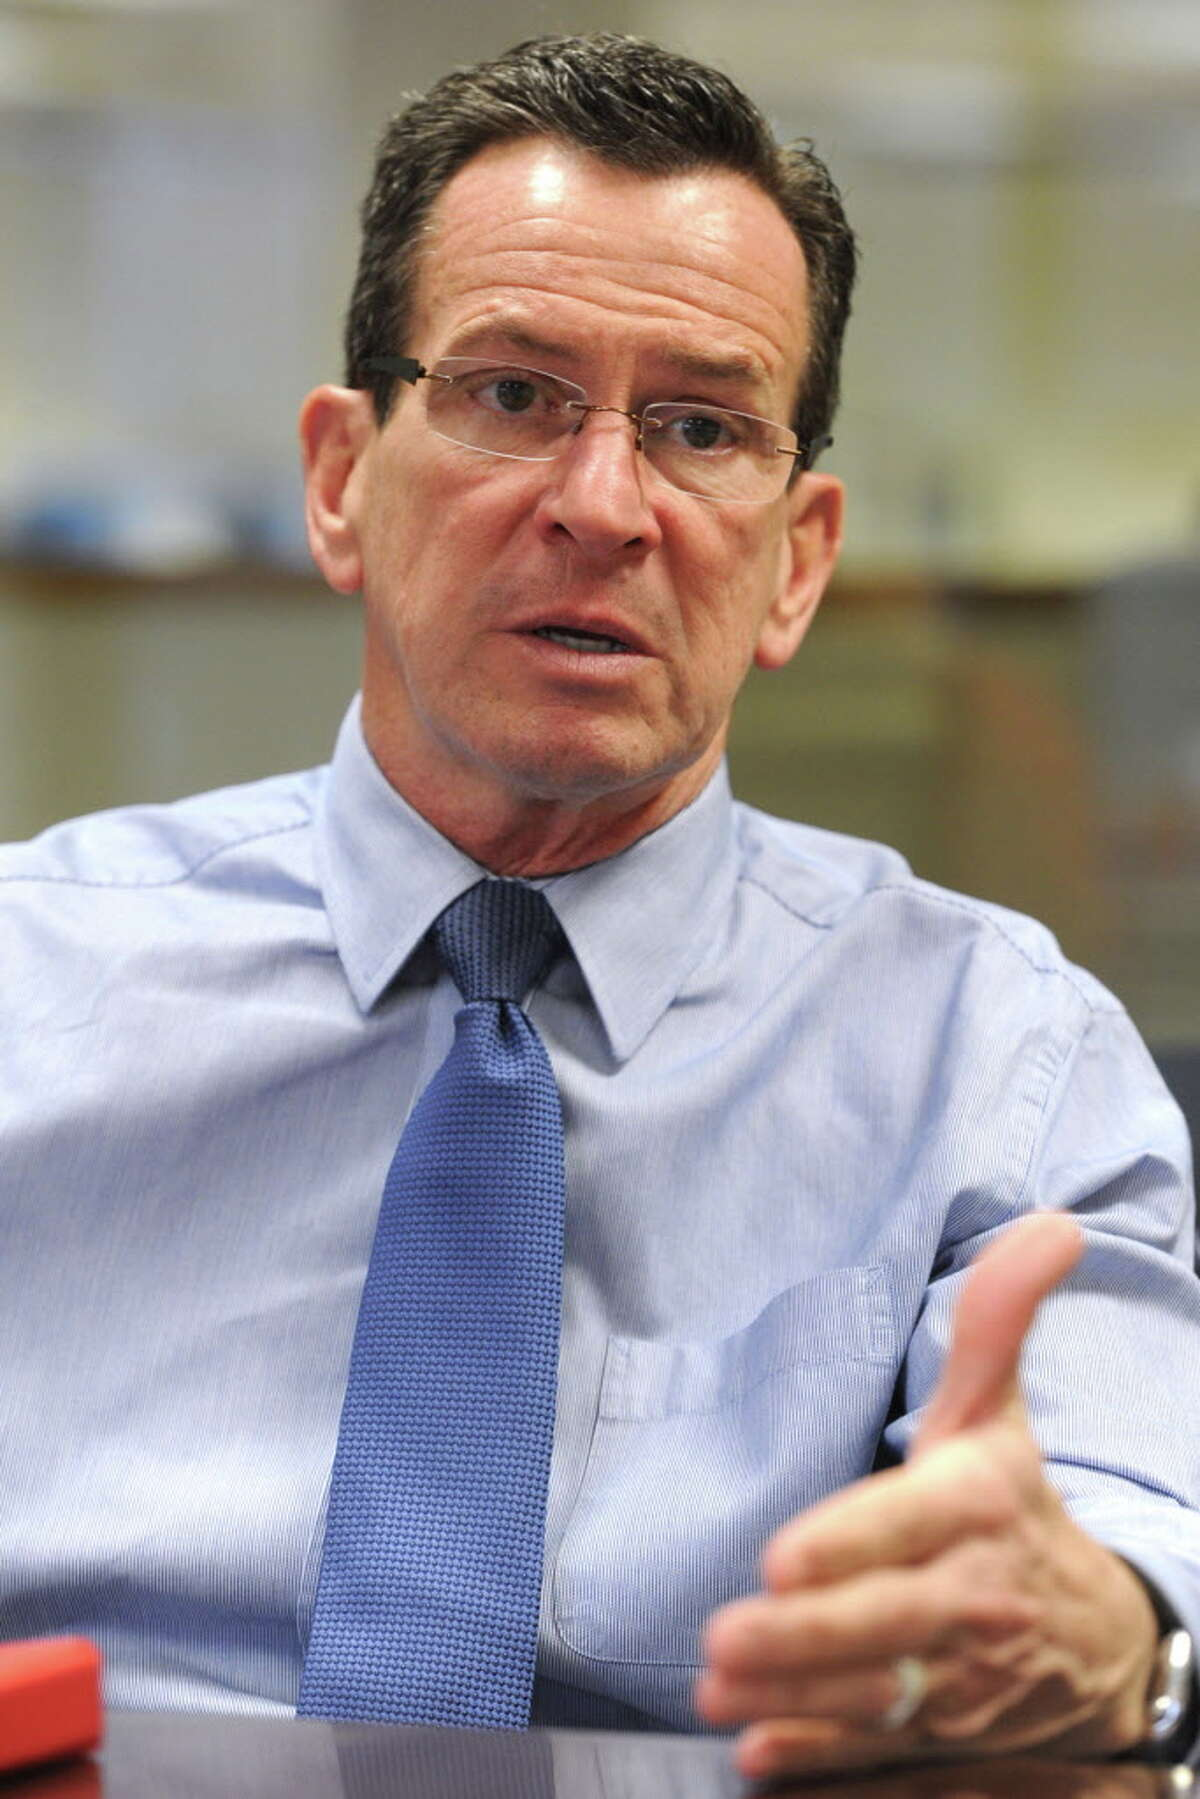 Governor Dannel P. Malloy speaks during an editorial board meeting with Hearst Connecticut Media in Bridgeport, Conn. Feb. 24, 2016.